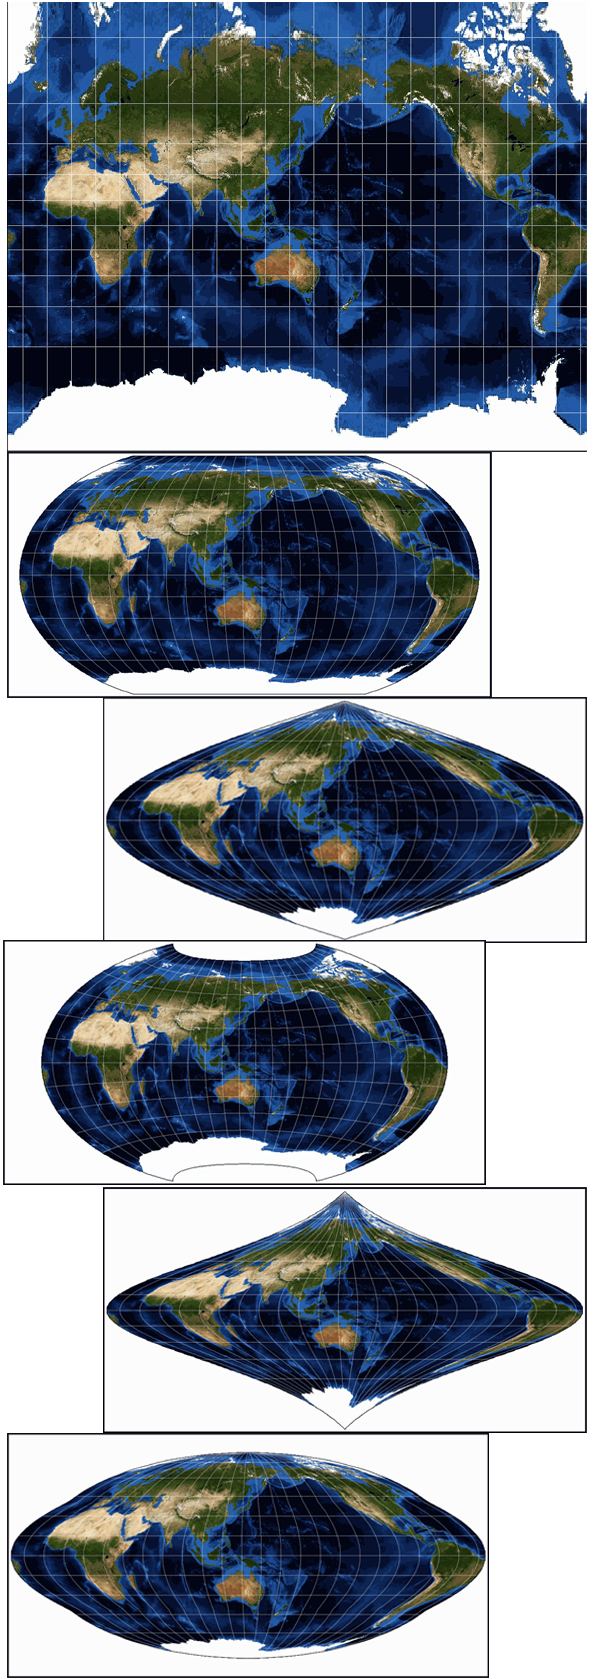 World maps showing different projections